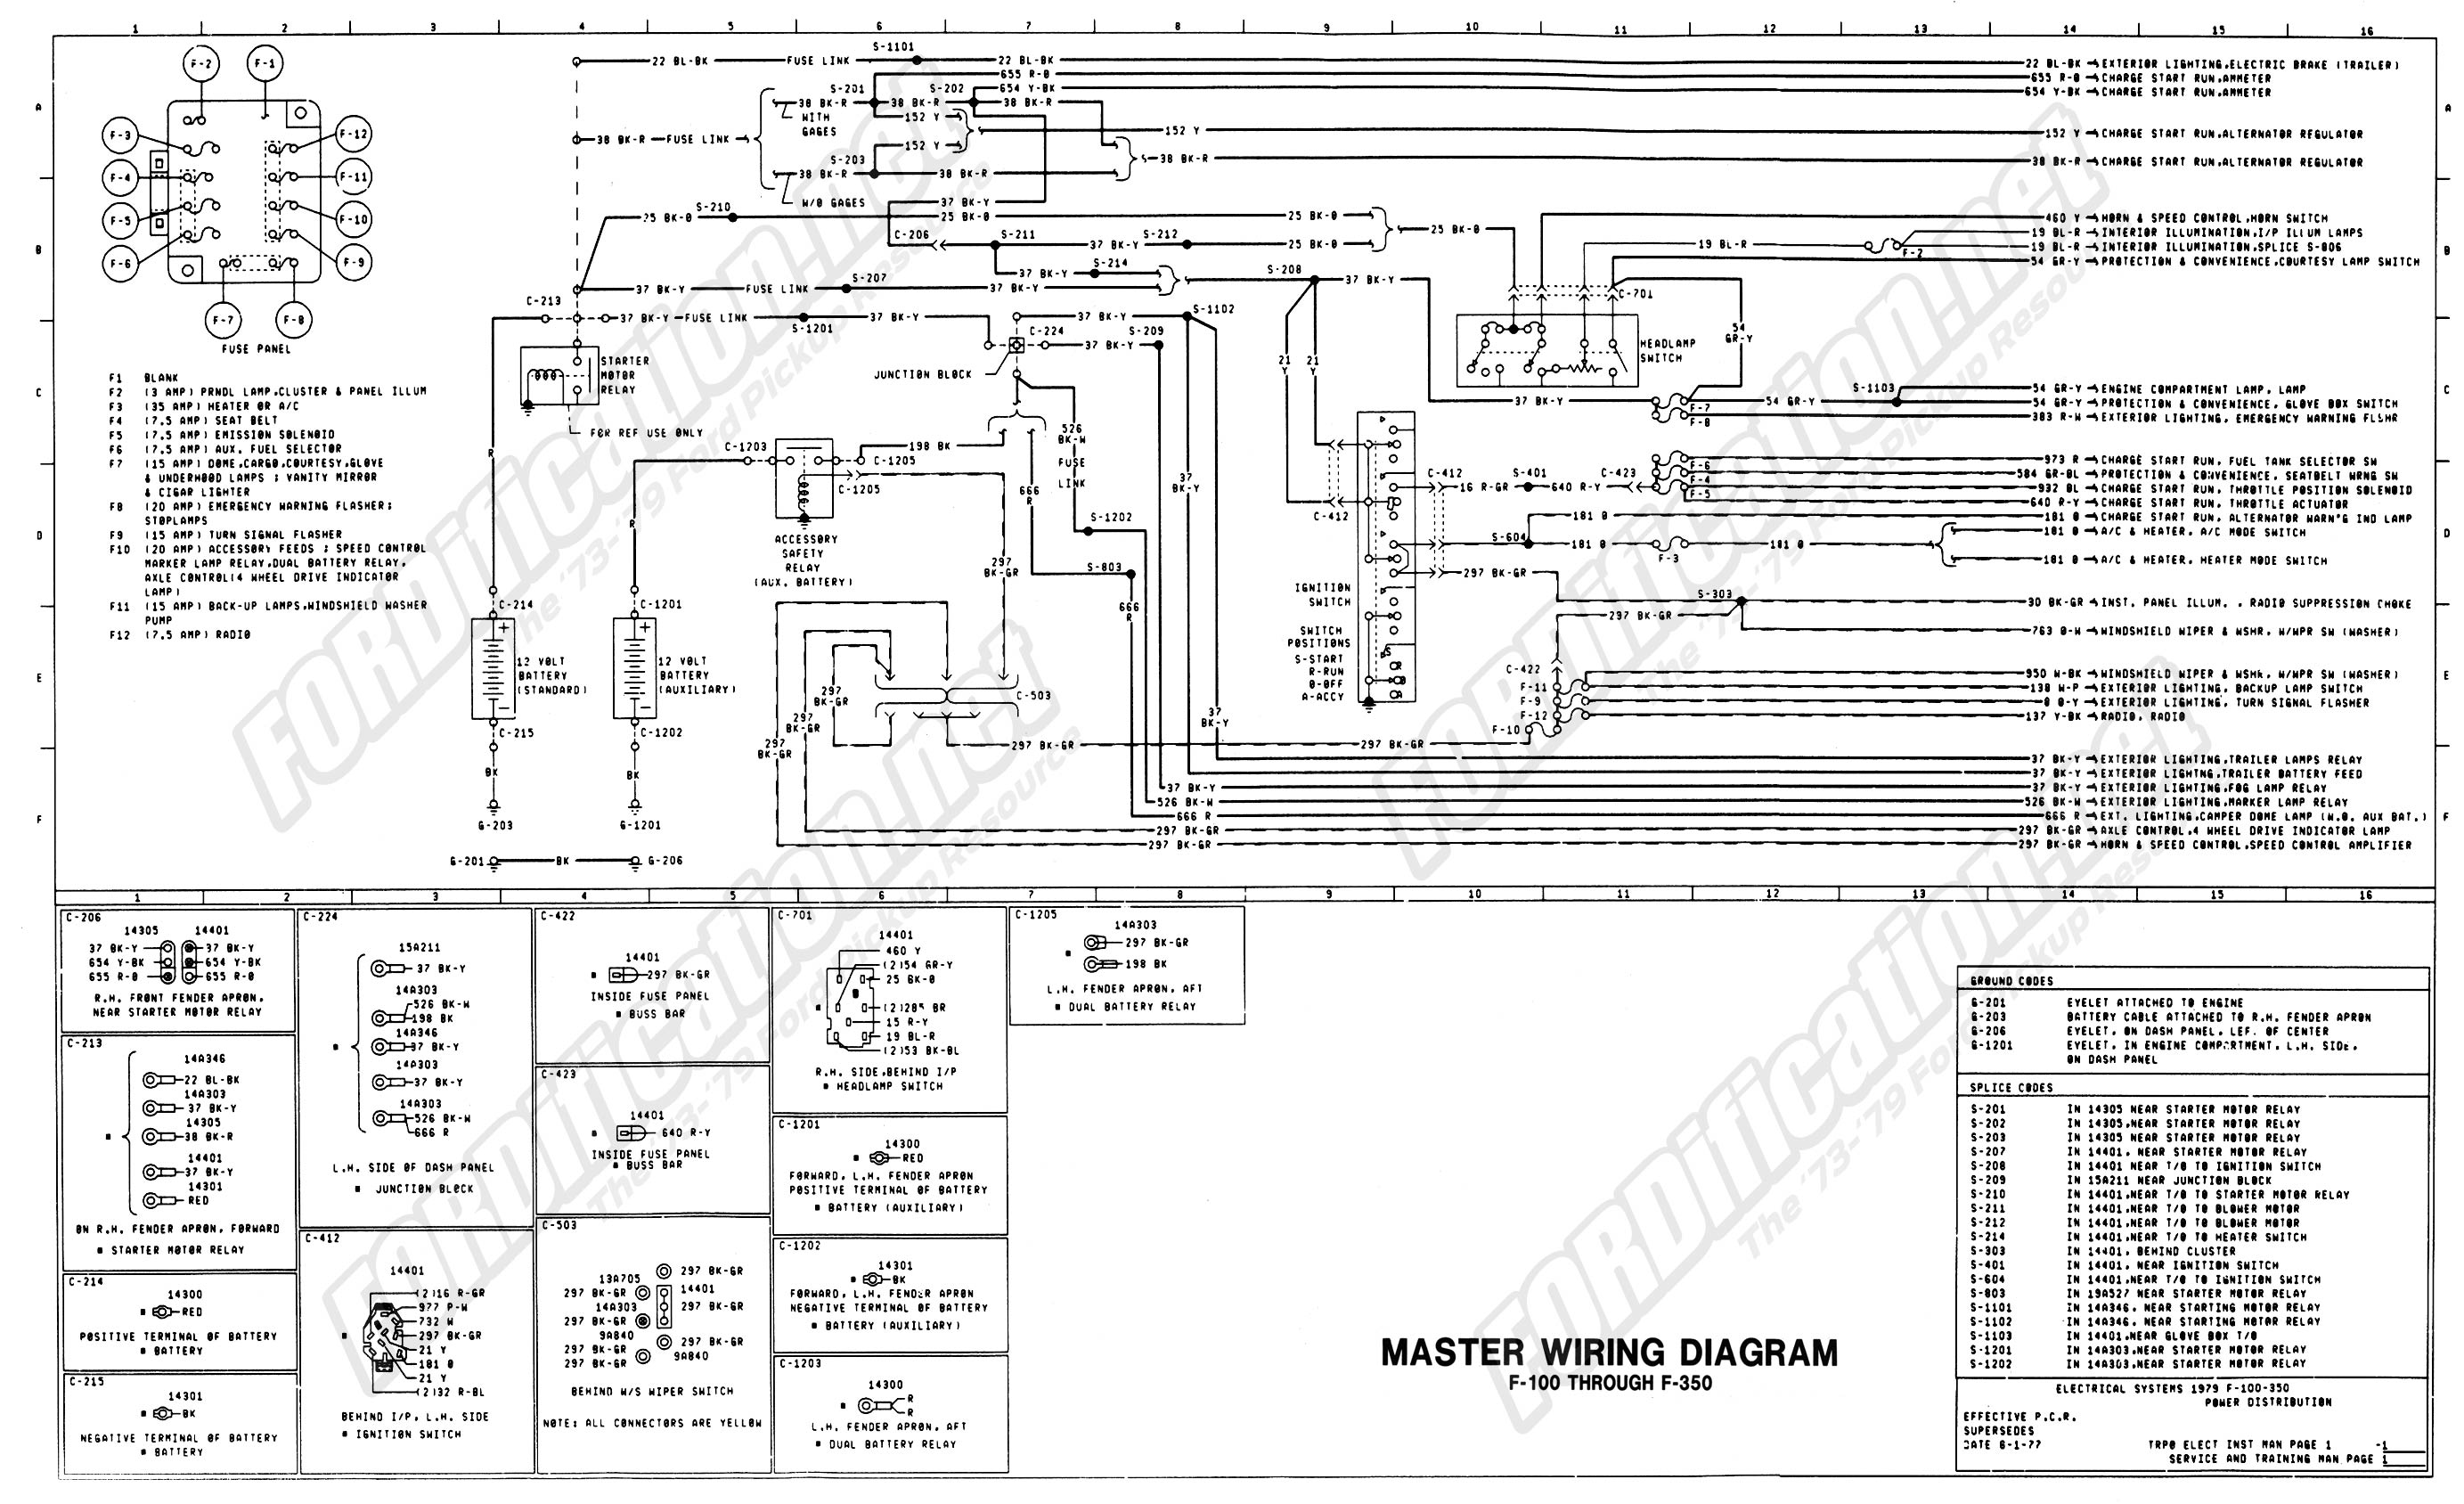 1979 ford f150 wiring diagram